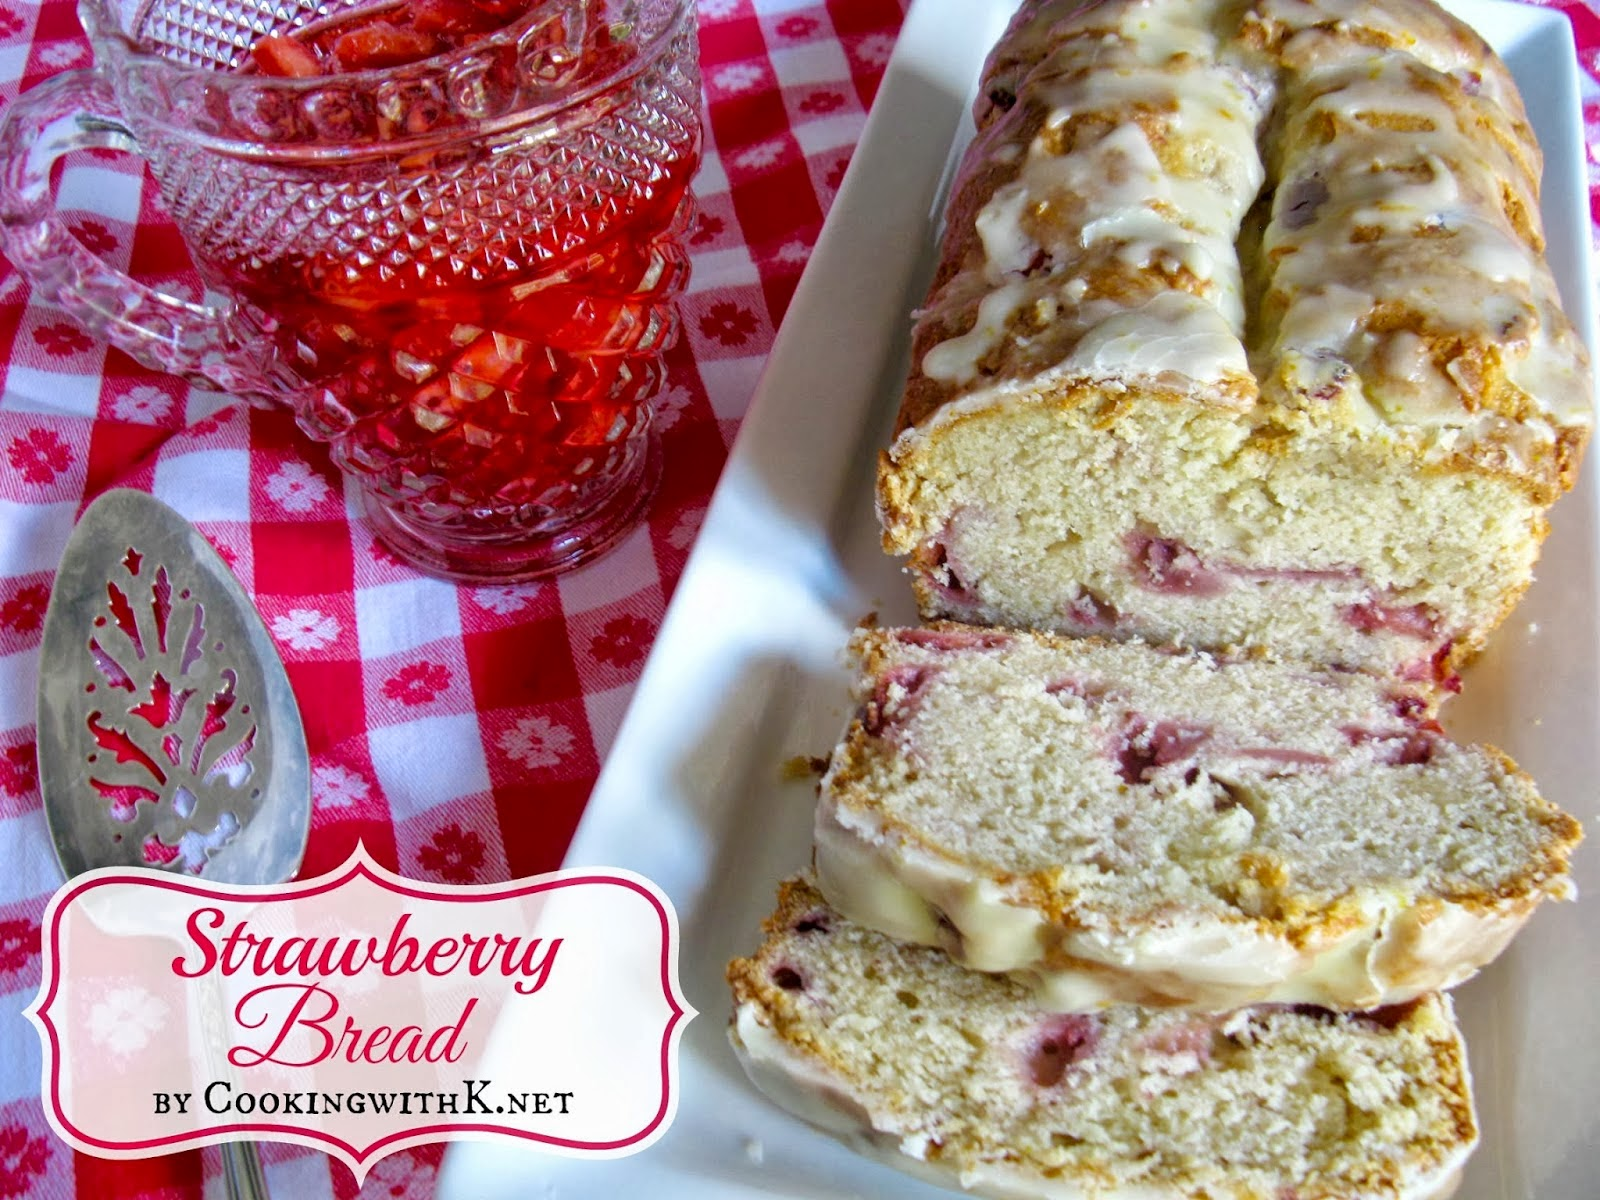 http://www.cookingwithk.net/2014/03/strawberry-quick-bread-with-chunky.html